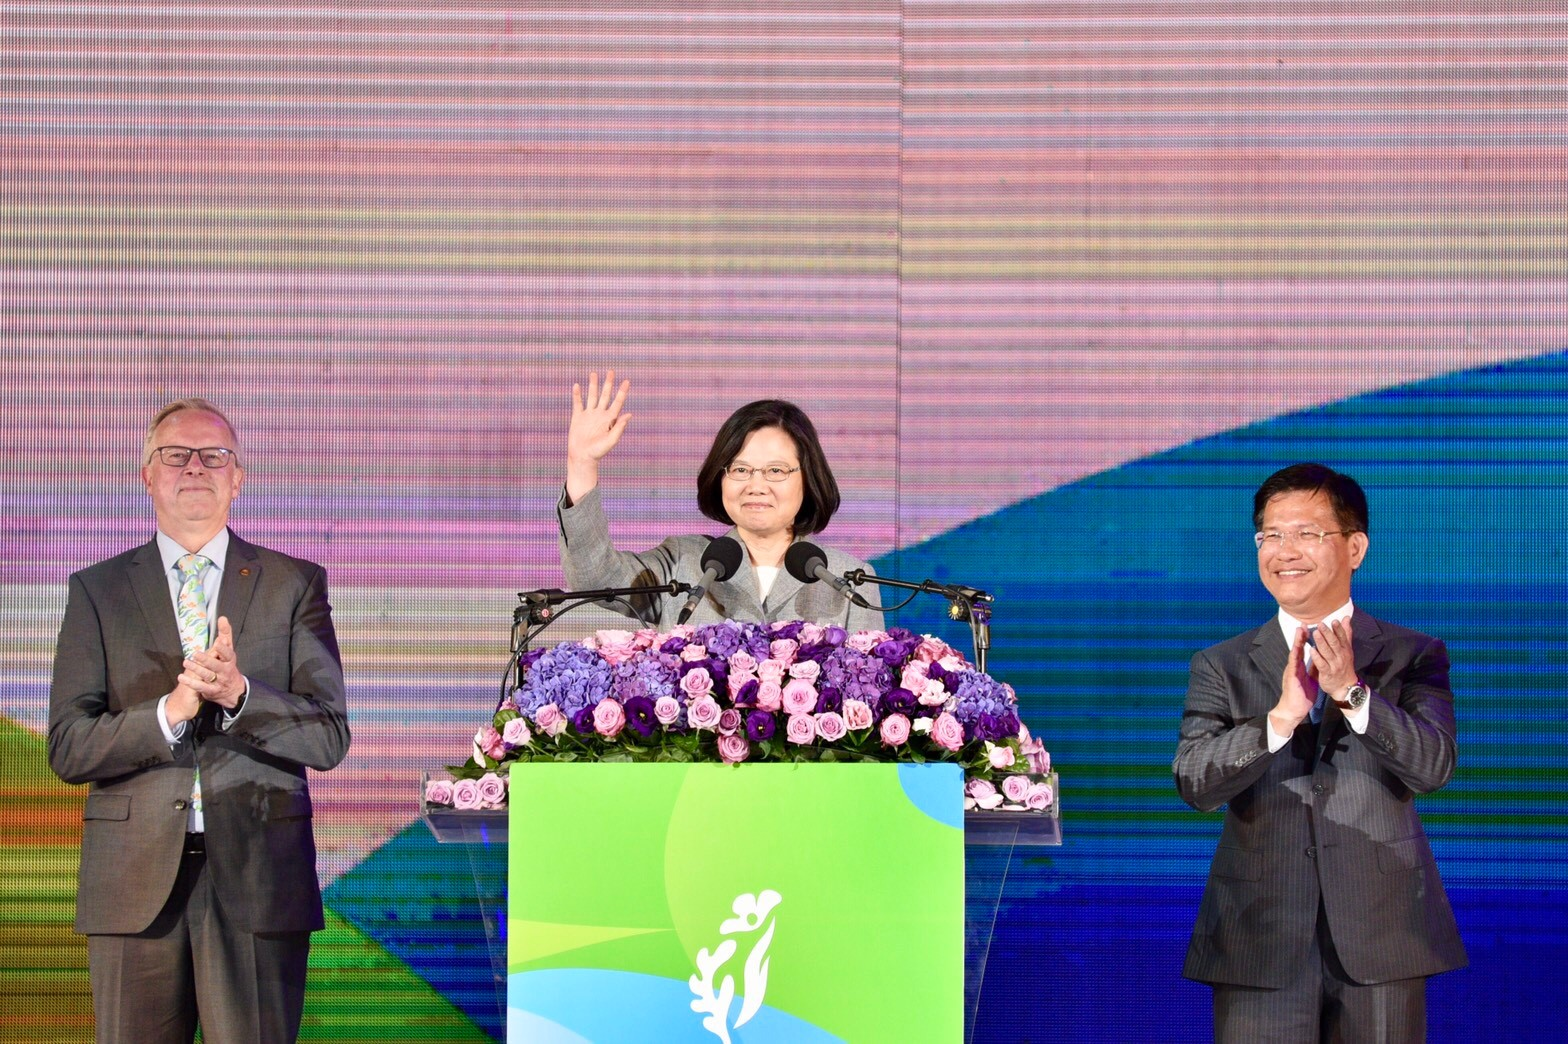 More Than 30,000 Witnessed Shuinan Flora Expo Night. President Tsai: We Take Pride in Taichung